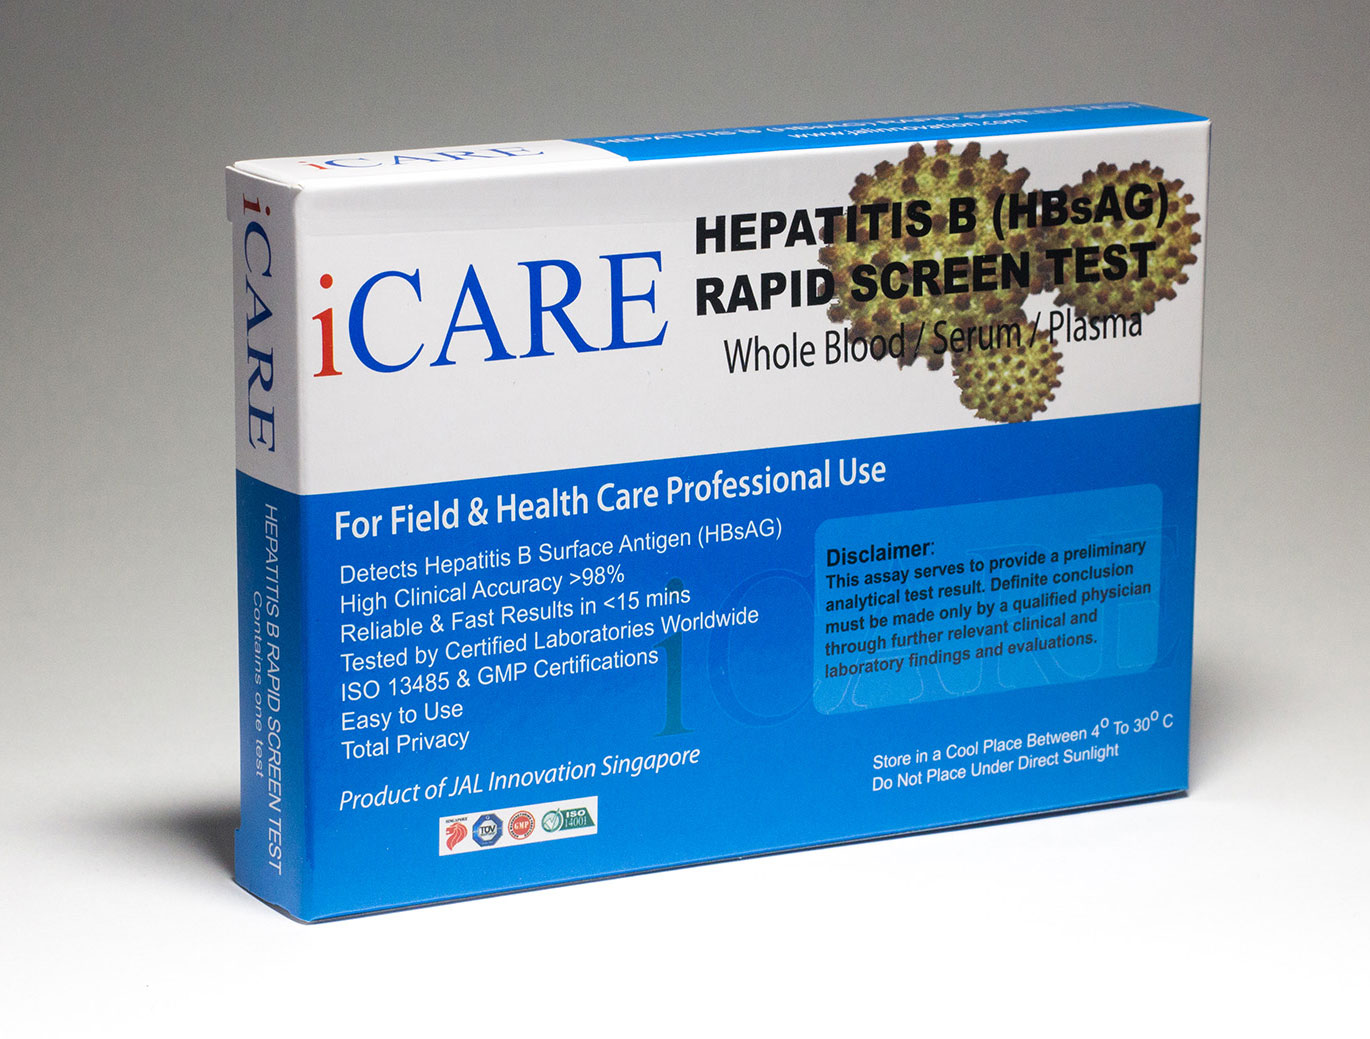 06-Hepatitis-B-Test-Kit-(HBsAg)_web